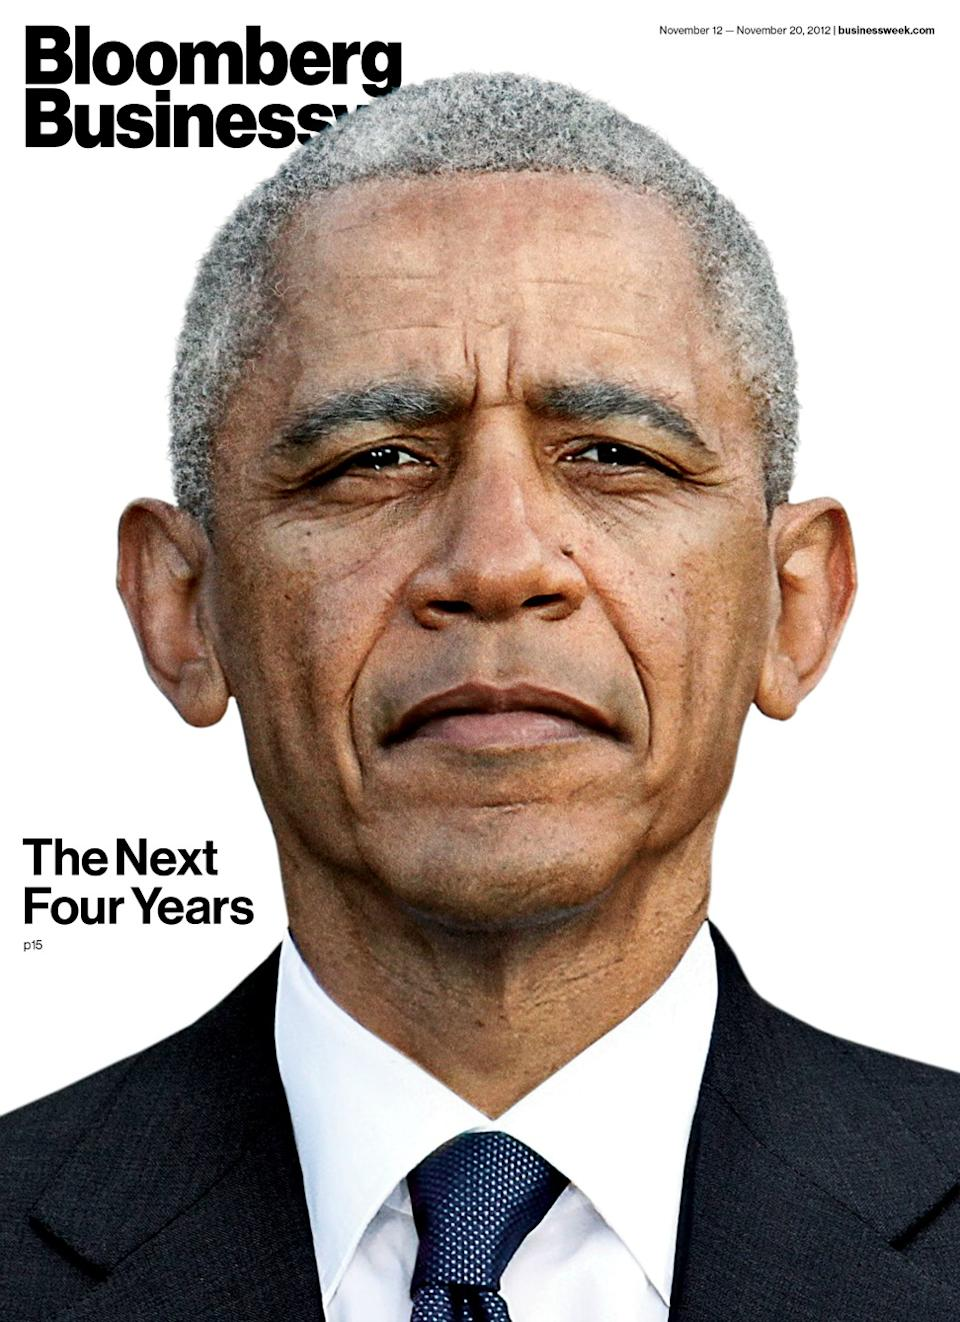 Obama Ages Four Years in Striking 'Bloomberg Businessweek' Cover [PICS]